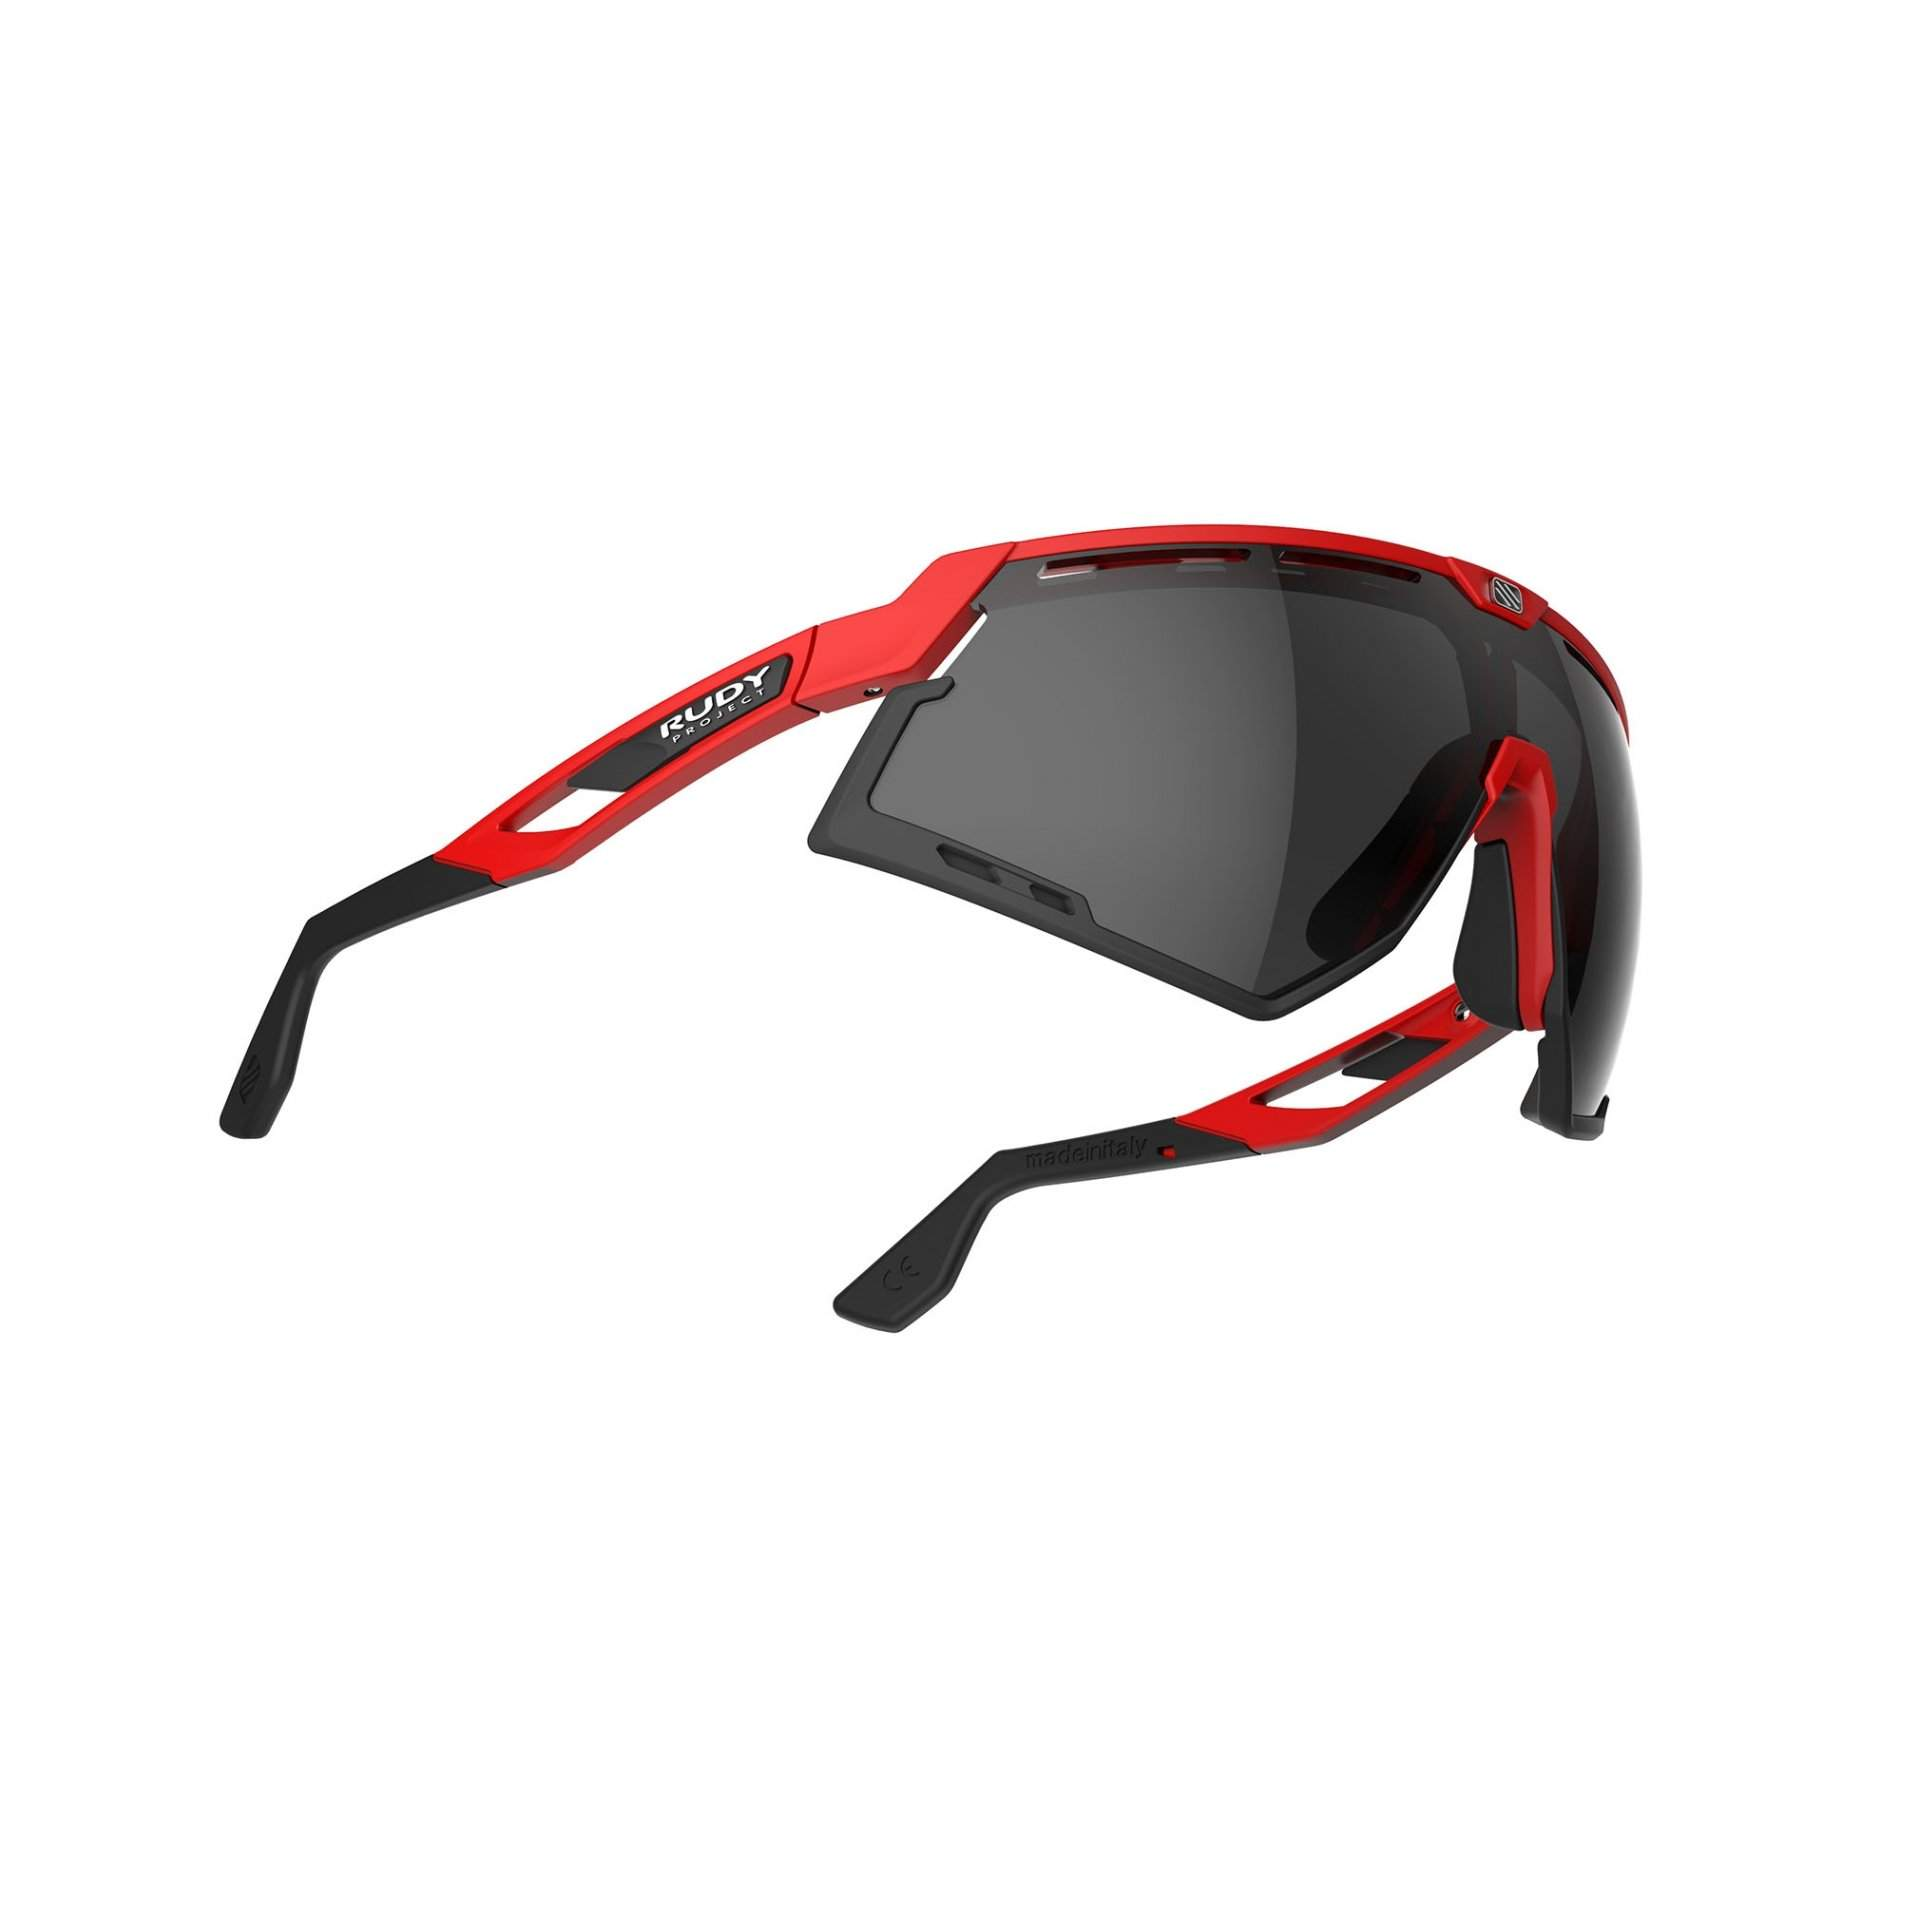 OKULARY RUDY PROJECT DEFENDER FIRE RED MATTE SMOKE BLACK 3